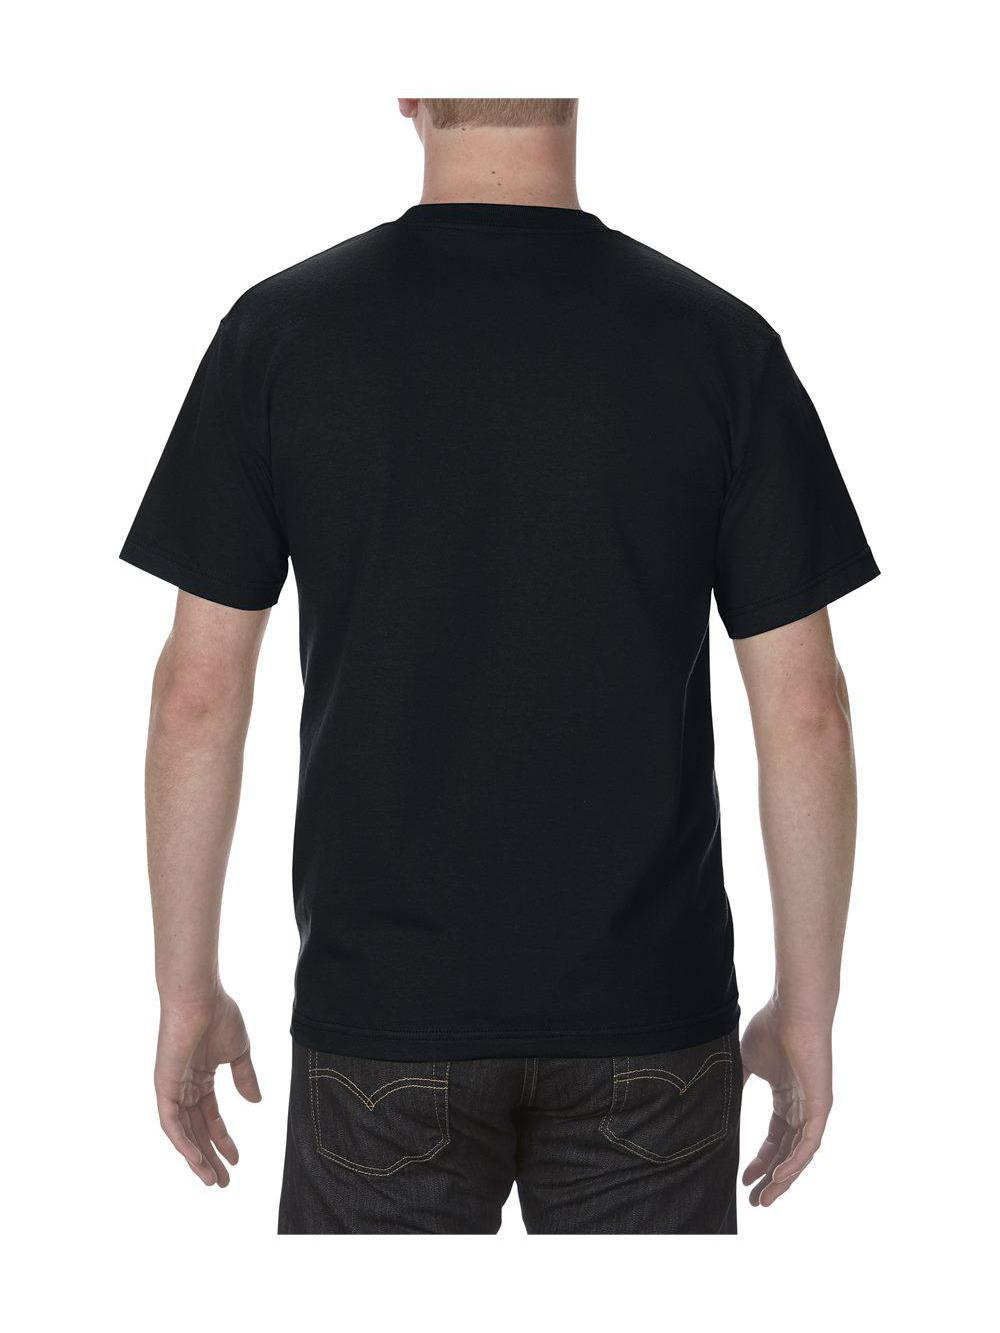 ALSTYLE-Classic-T-Shirt-1301 thumbnail 13